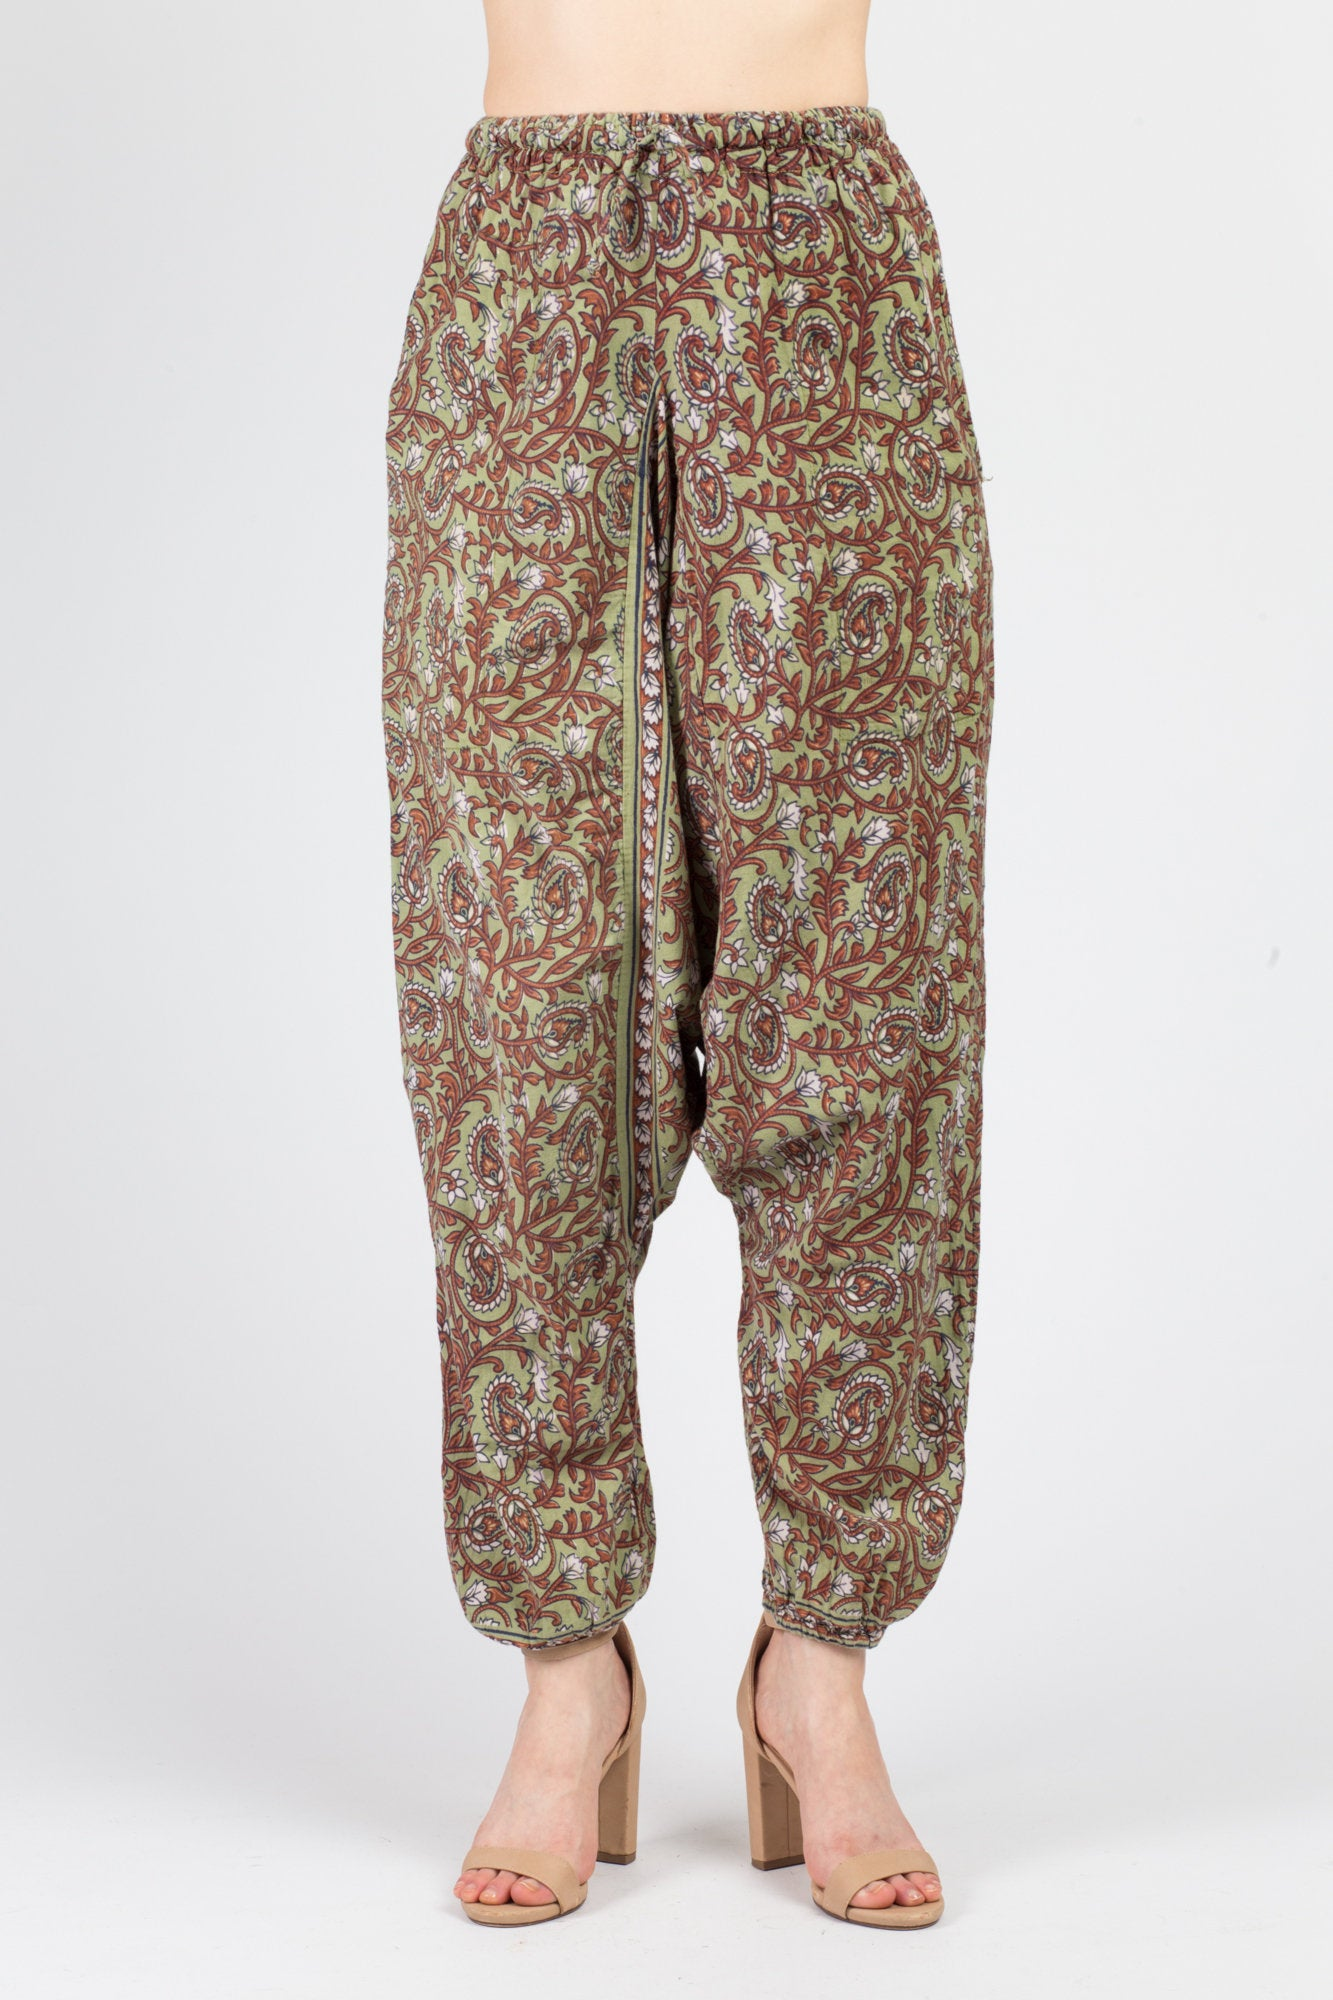 90s Boho Floral Harem Pants - Medium